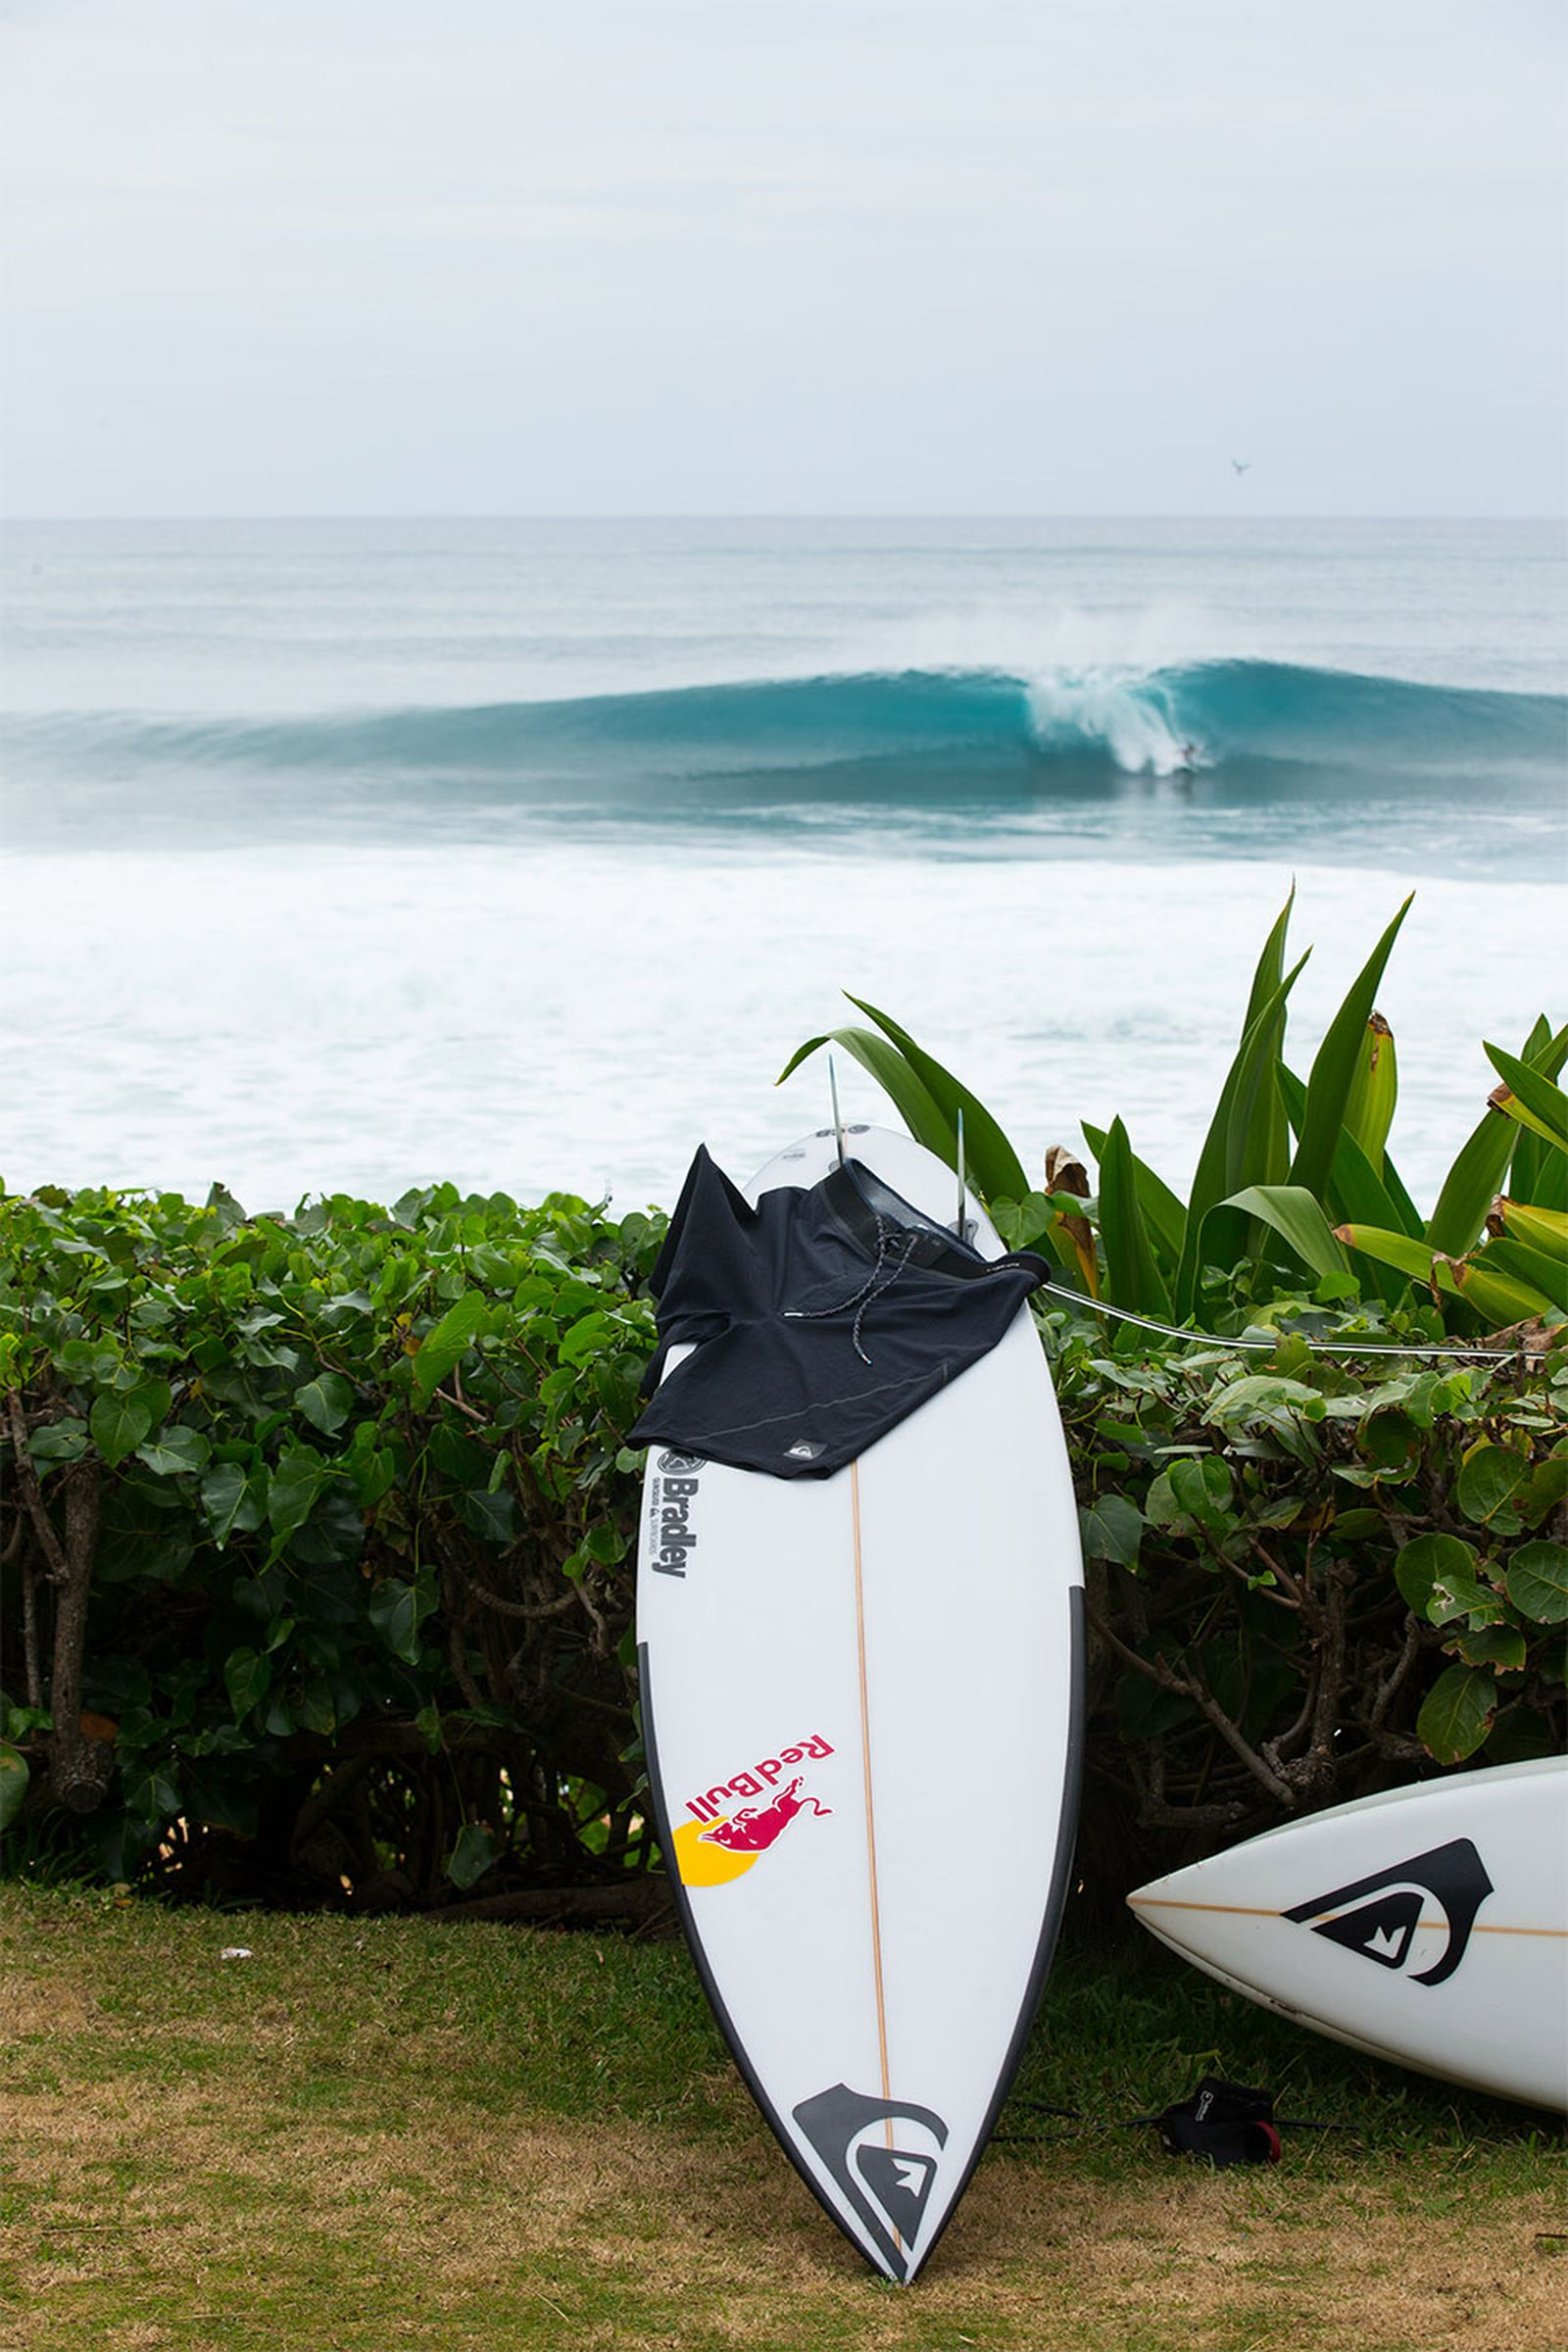 founders-cup-surfing-quiksilver-03